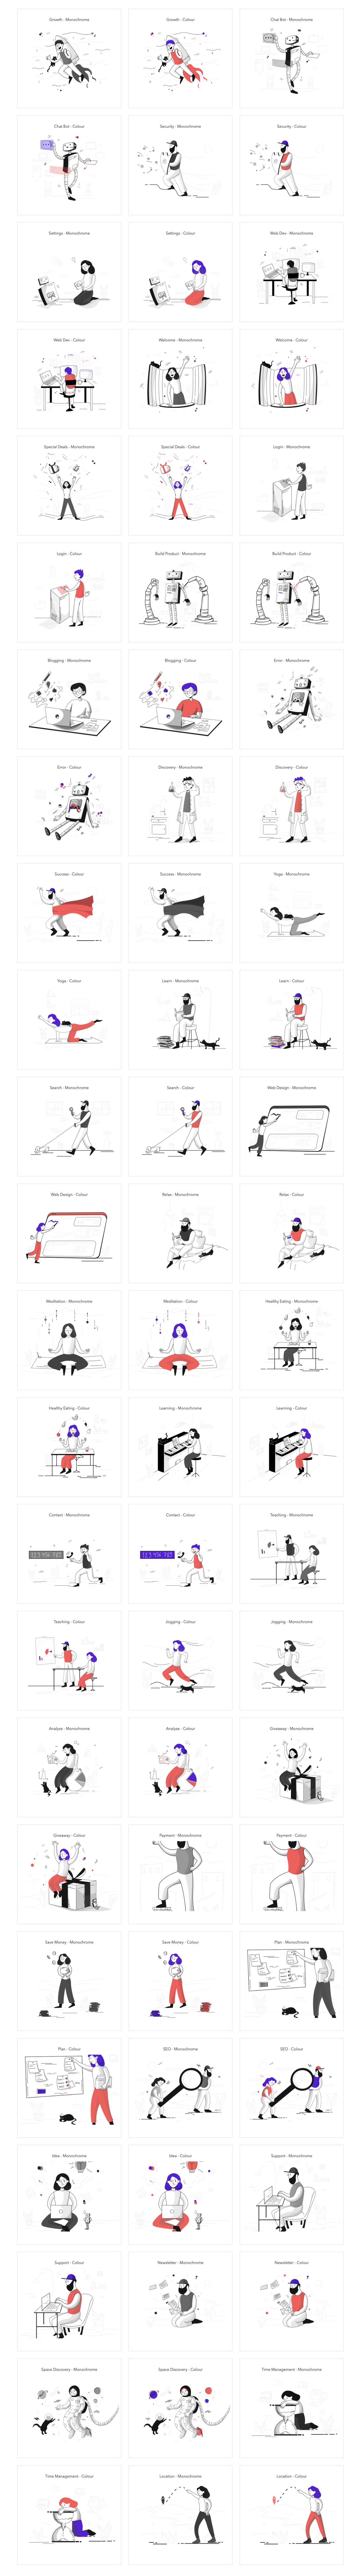 Pixeltrue Free Illustrations - MIT licensed SVG illustrations in 2 different styles for you to use on your next project. Use the illustrations commercially without attribution.